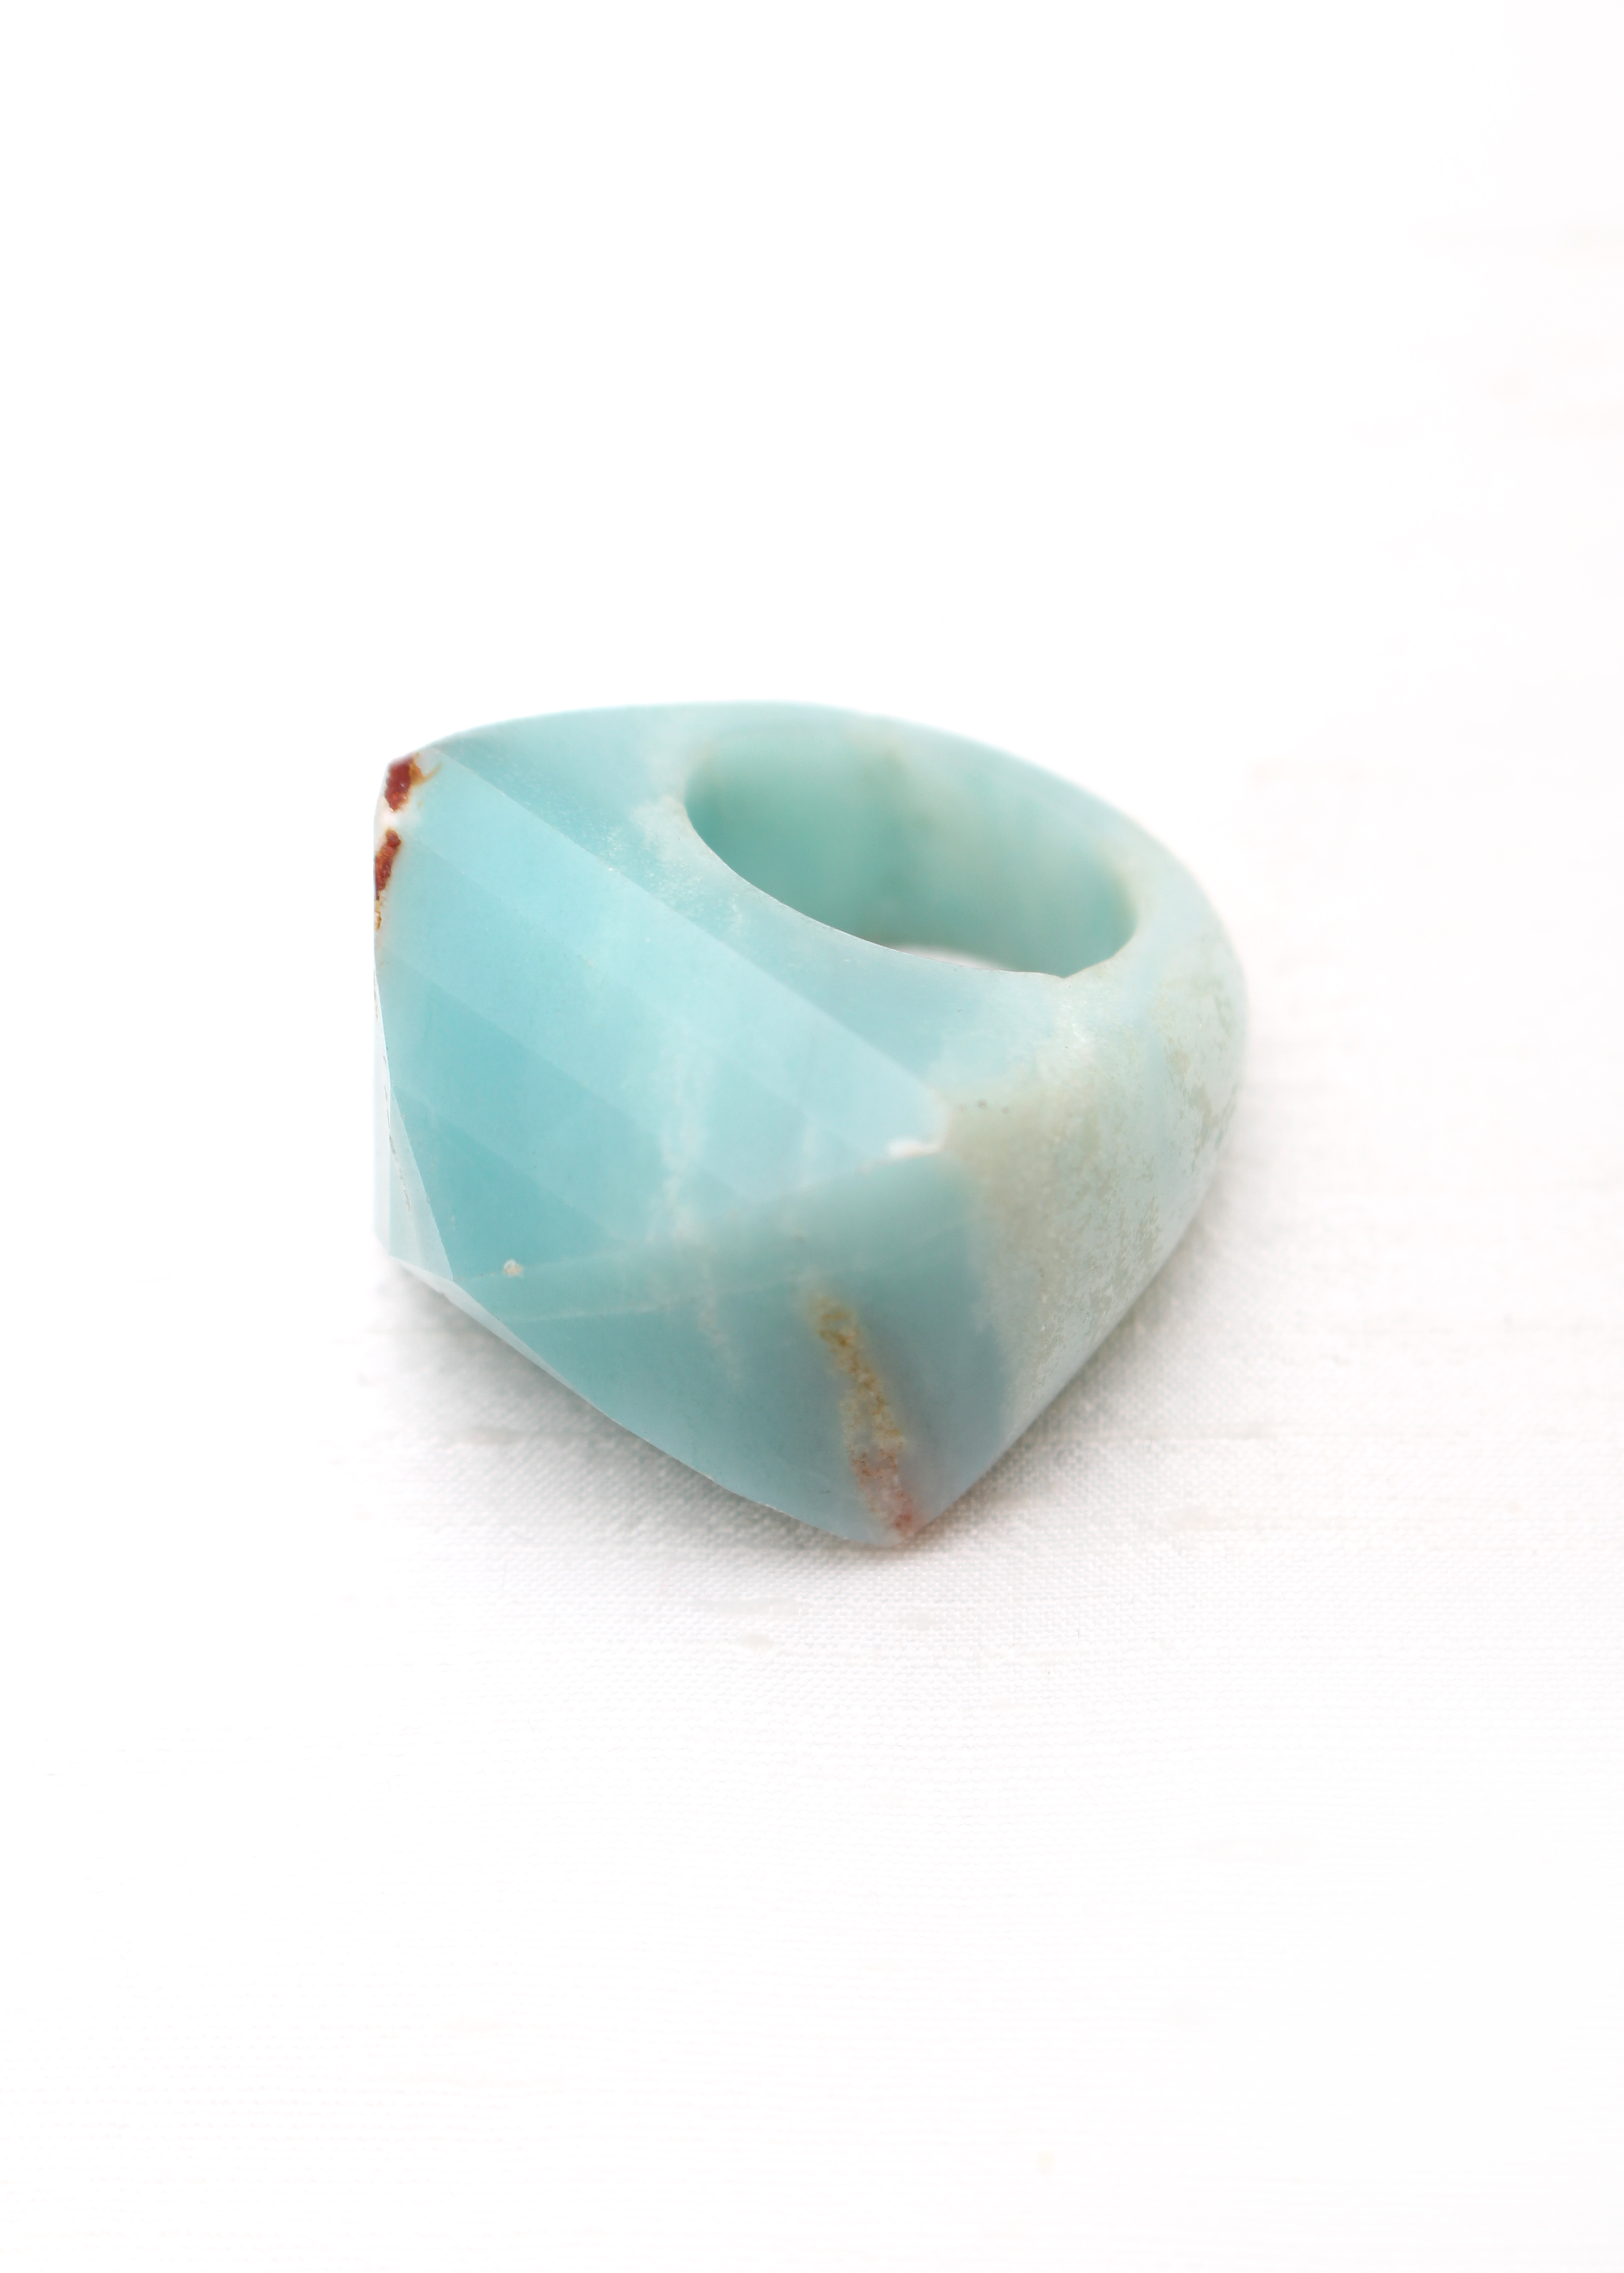 stones rings sterling women ring accessories item silver jewelry size ethnic blue amazonite vintage